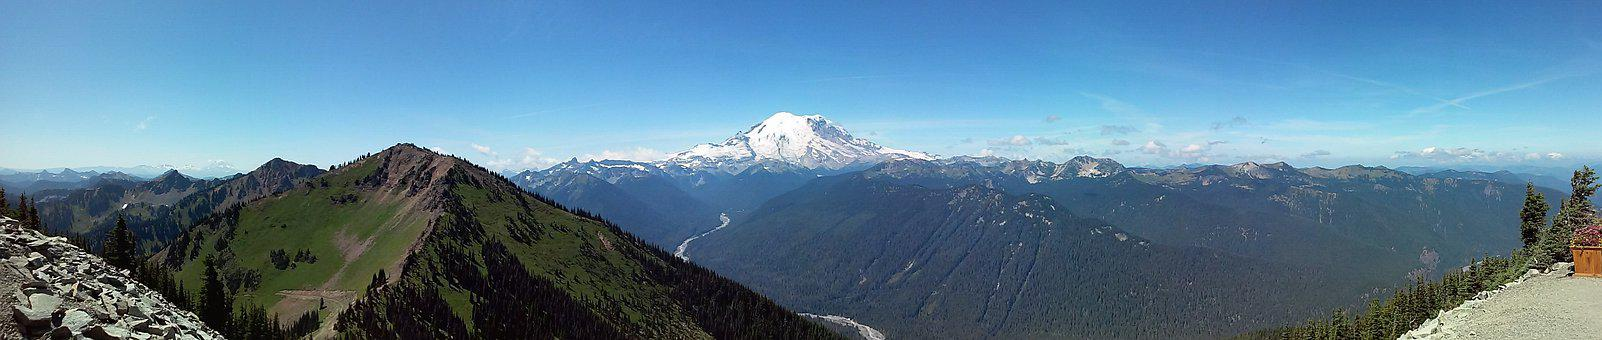 Panoramic, Panorama, Snow, Nature, Landscape, Rainier